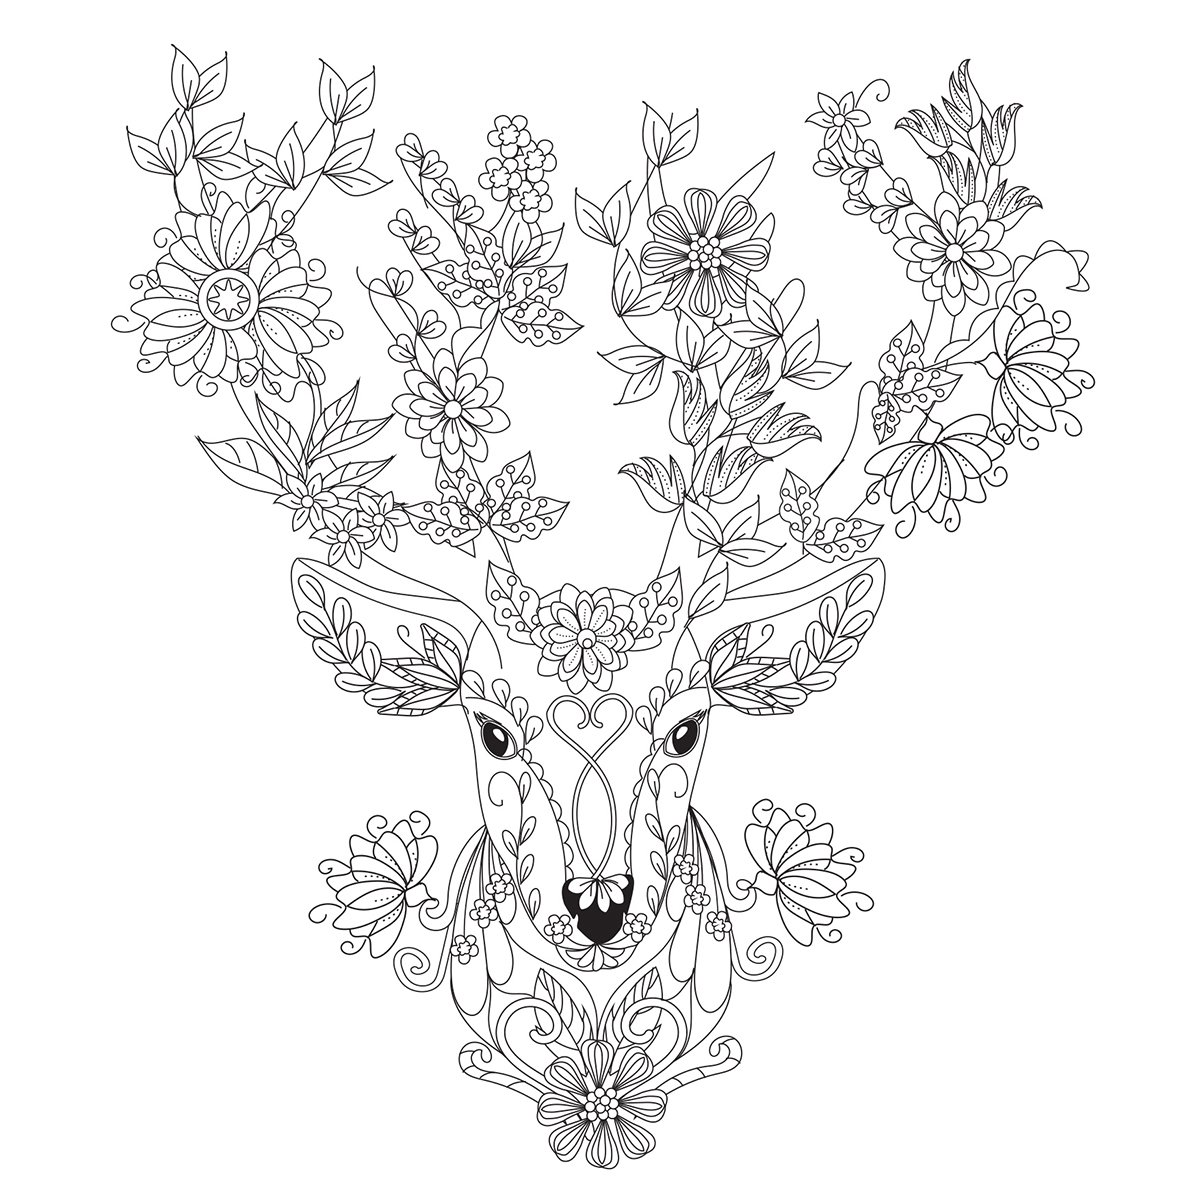 Kaisercraft Flora Deer KaiserColour Gift Card with Envelope, 6 x 6 6 x 6 CL1024